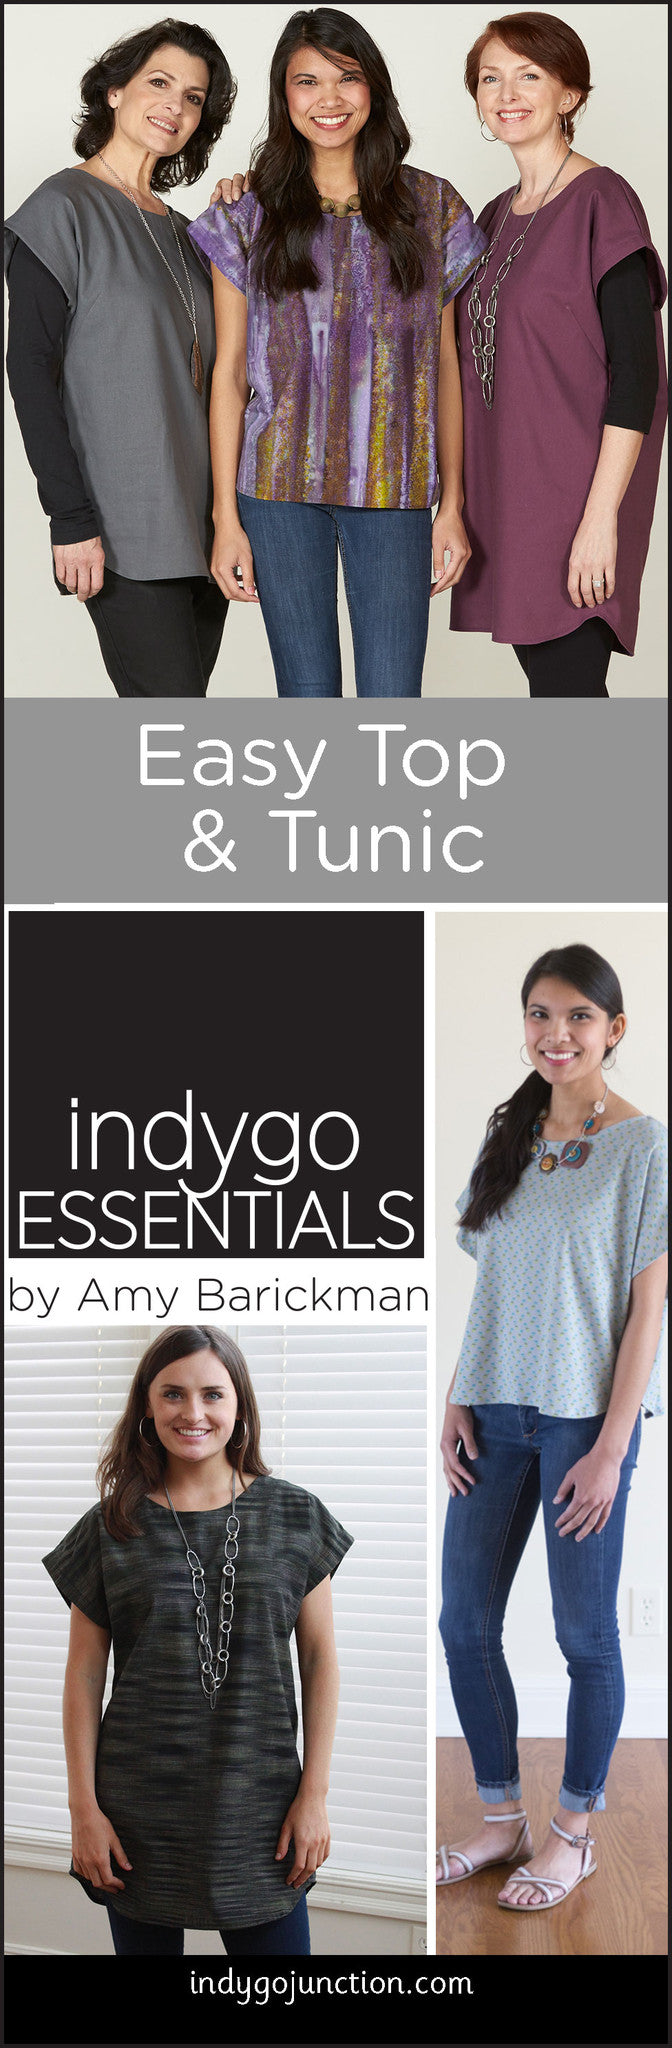 Indygo Essentials Easy Top and Tunic is a great go-to shirt pattern!